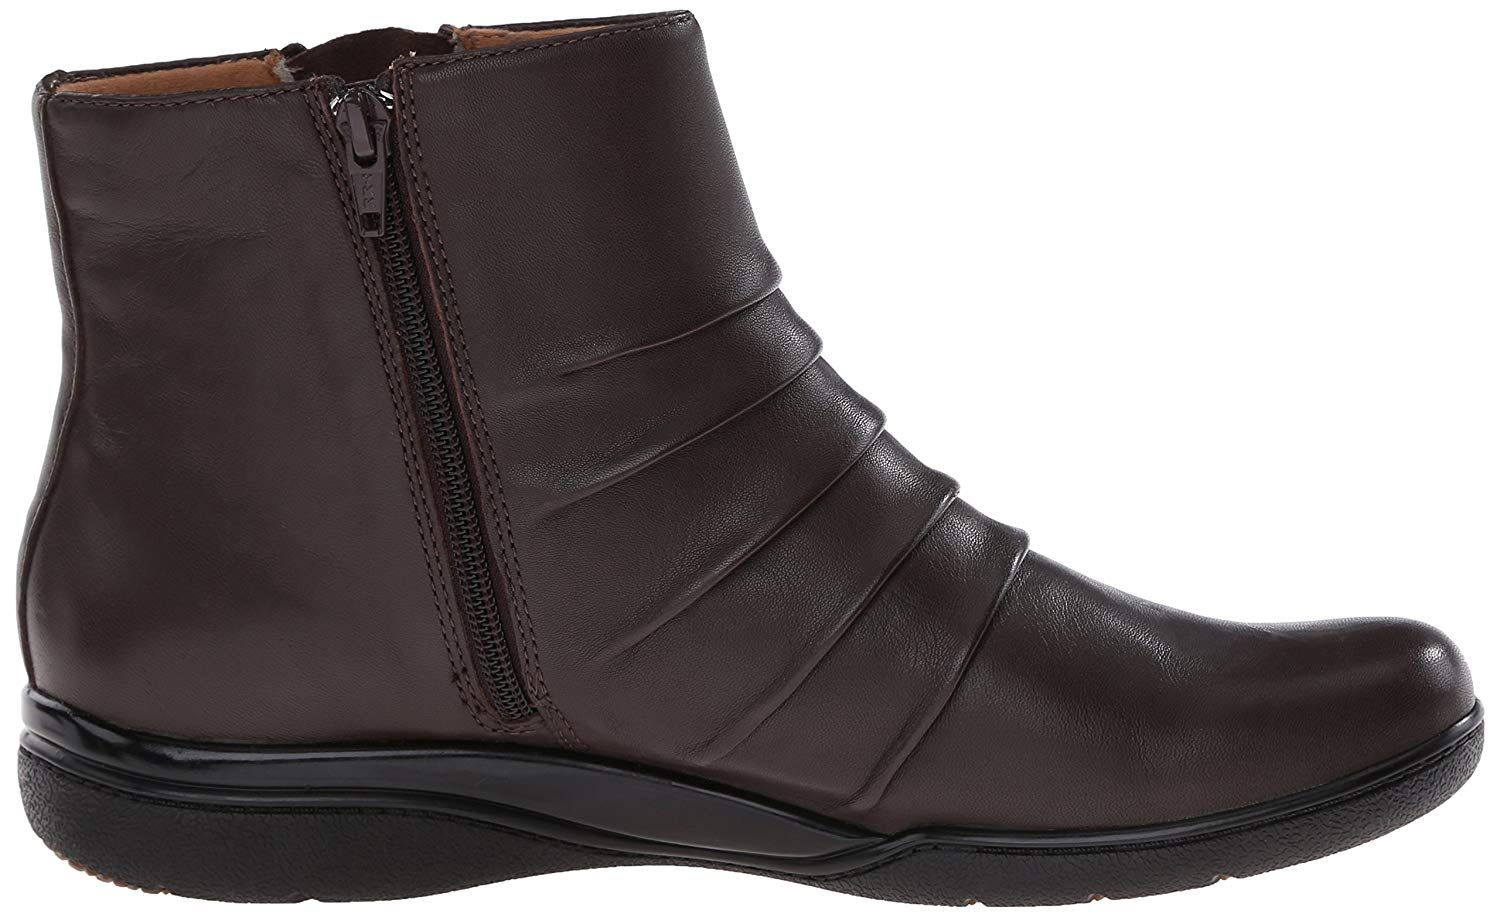 CLARKS Women's Kearns Blush Boot *** For more information, visit image link.